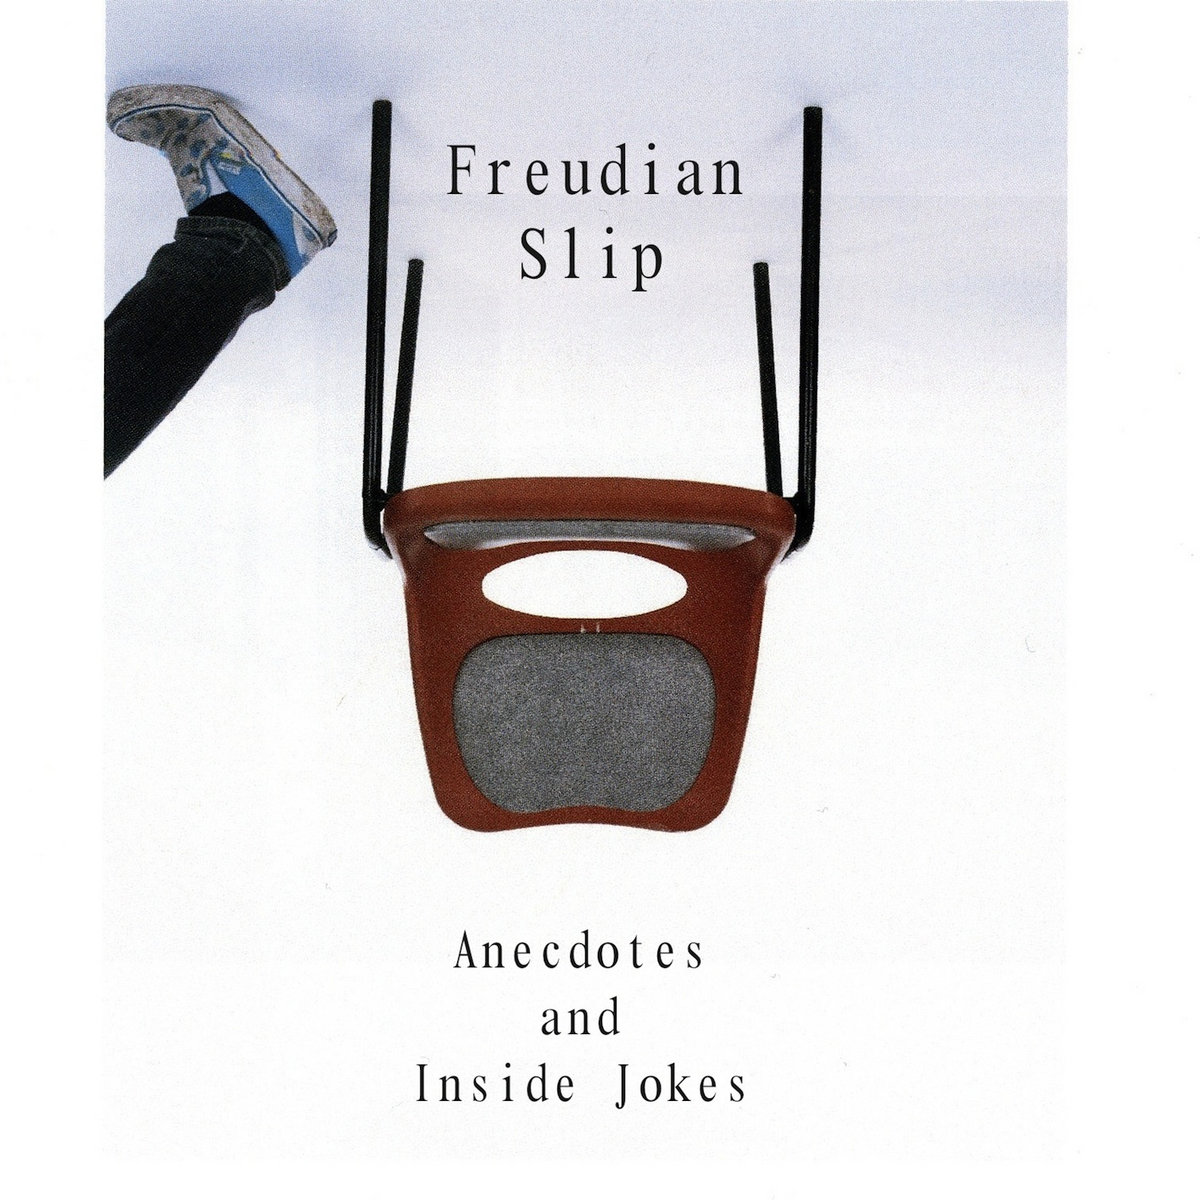 Anecdotes and Inside Jokes | Freudian Slip